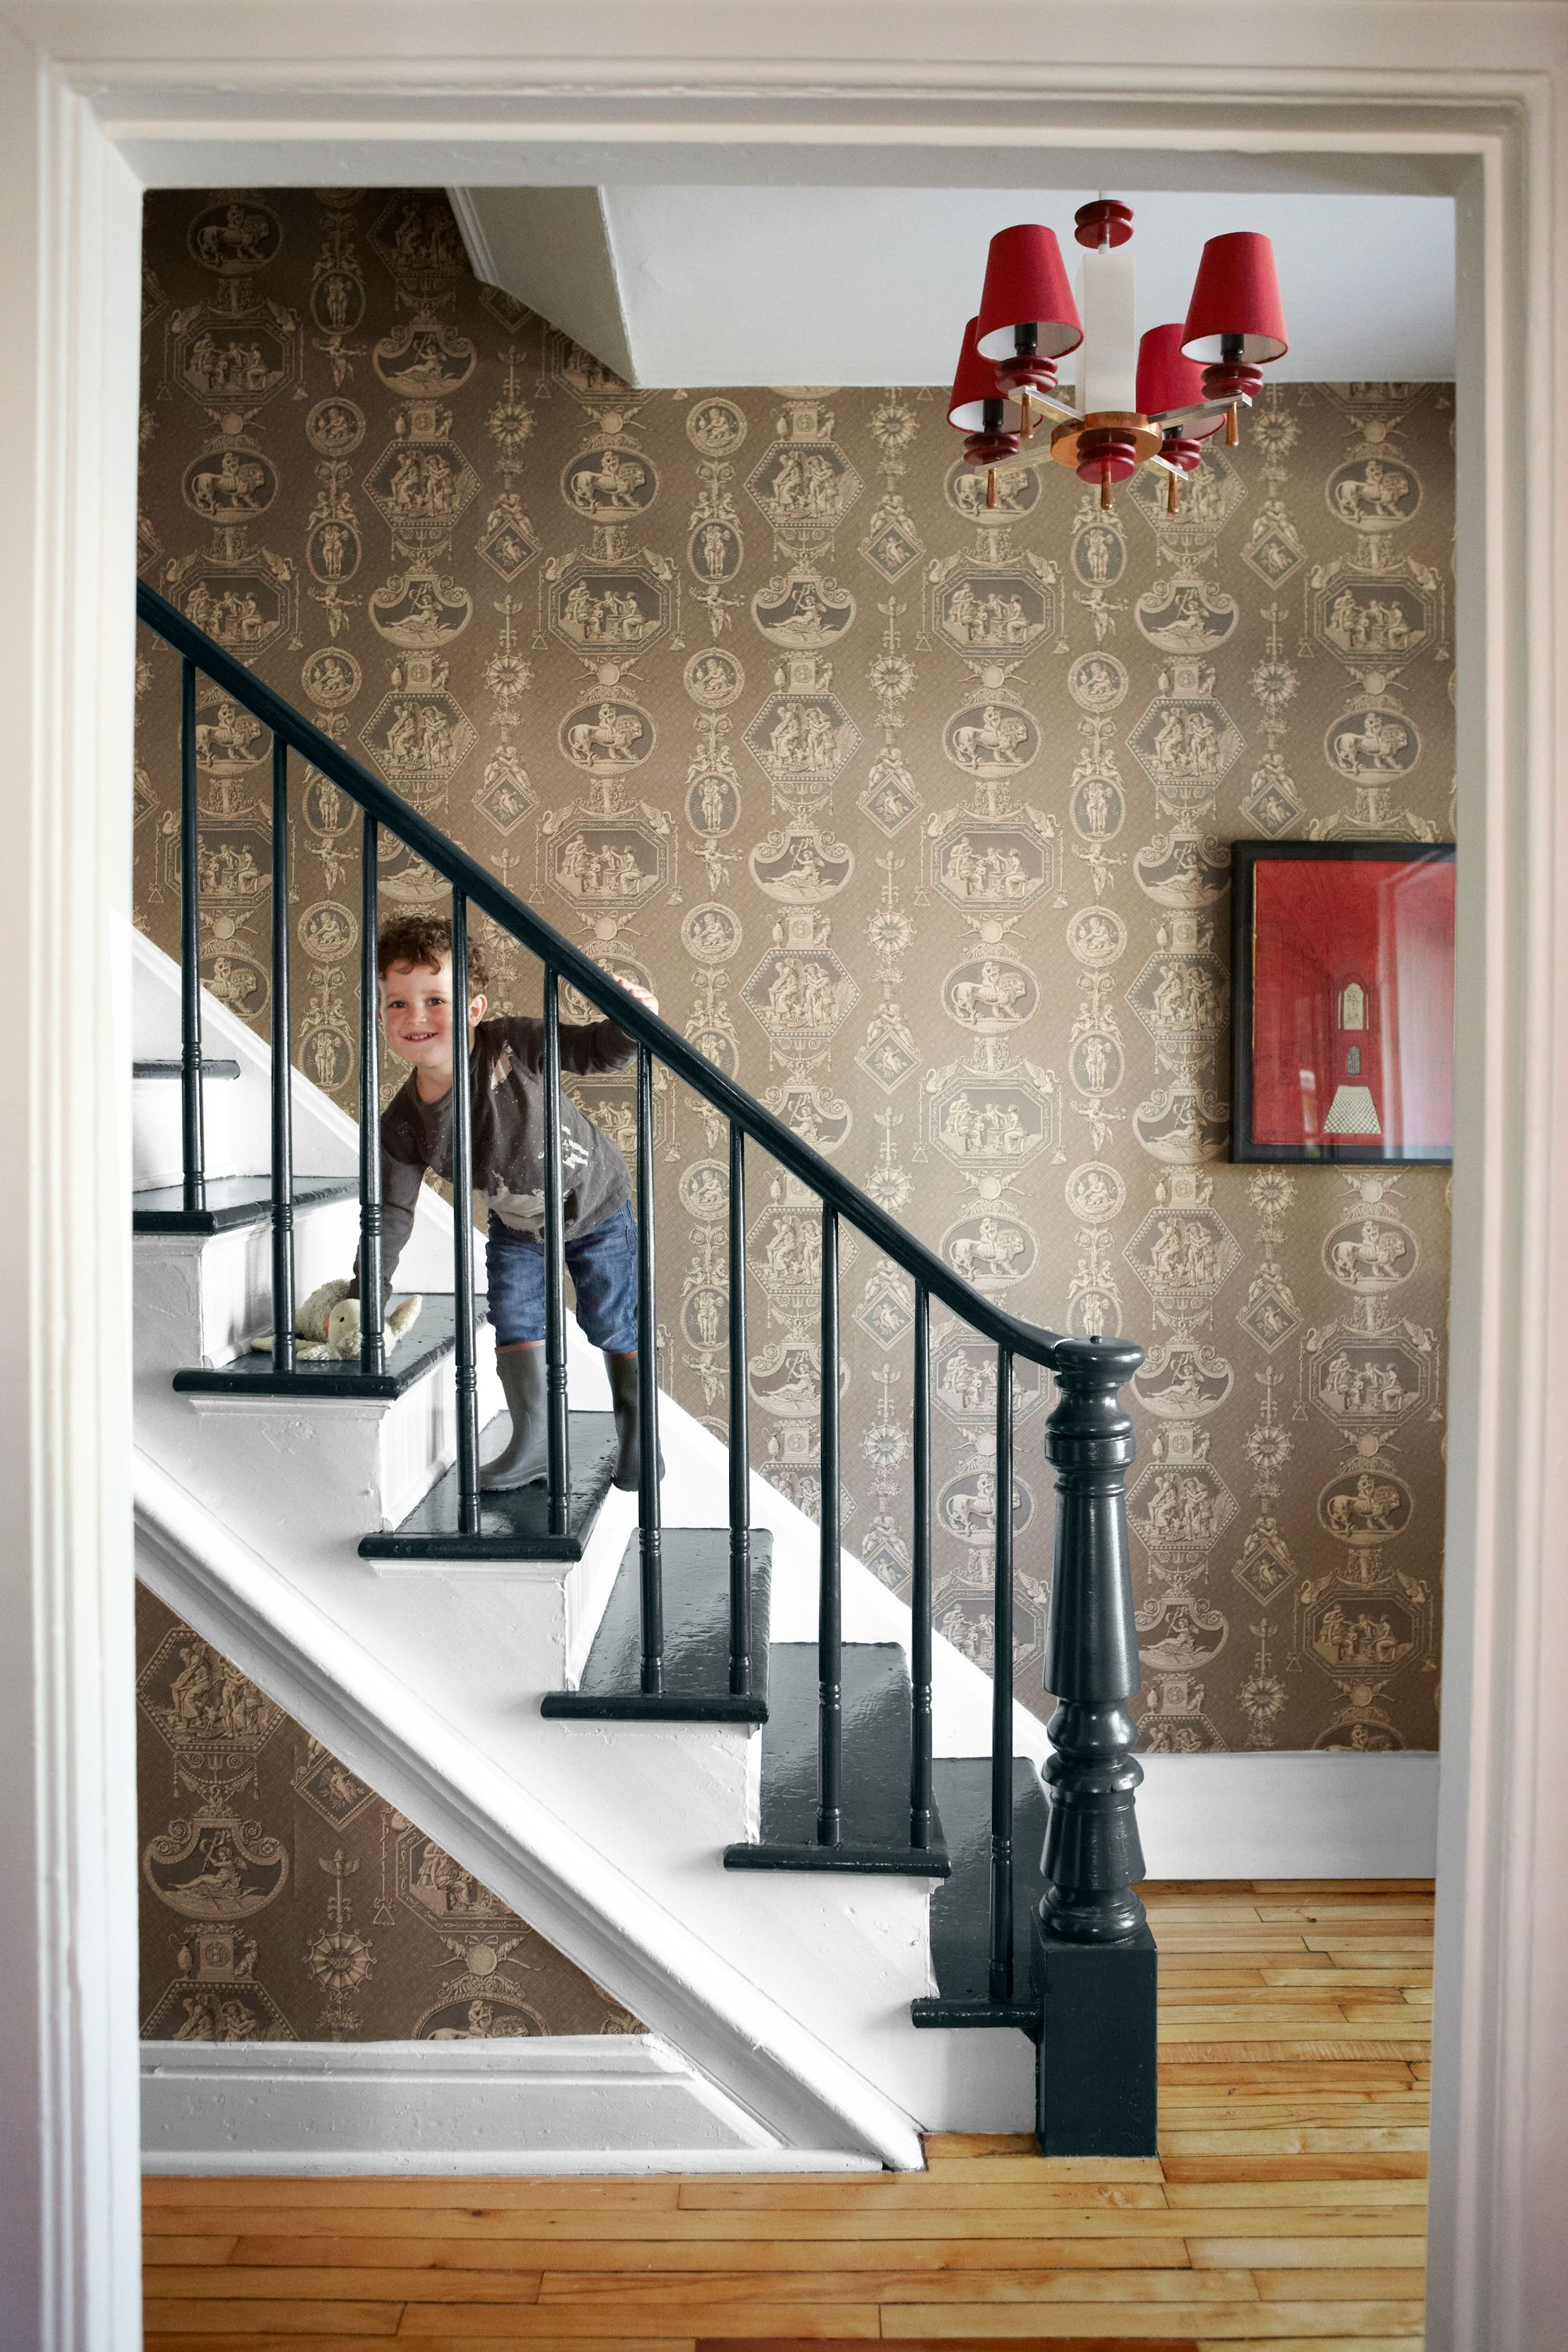 55 Best Staircase Ideas Top Ways To Decorate A Stairway | Wall Painting Designs For Staircase | Side Wall | Upstairs | Art Staircase | Boy | Creative